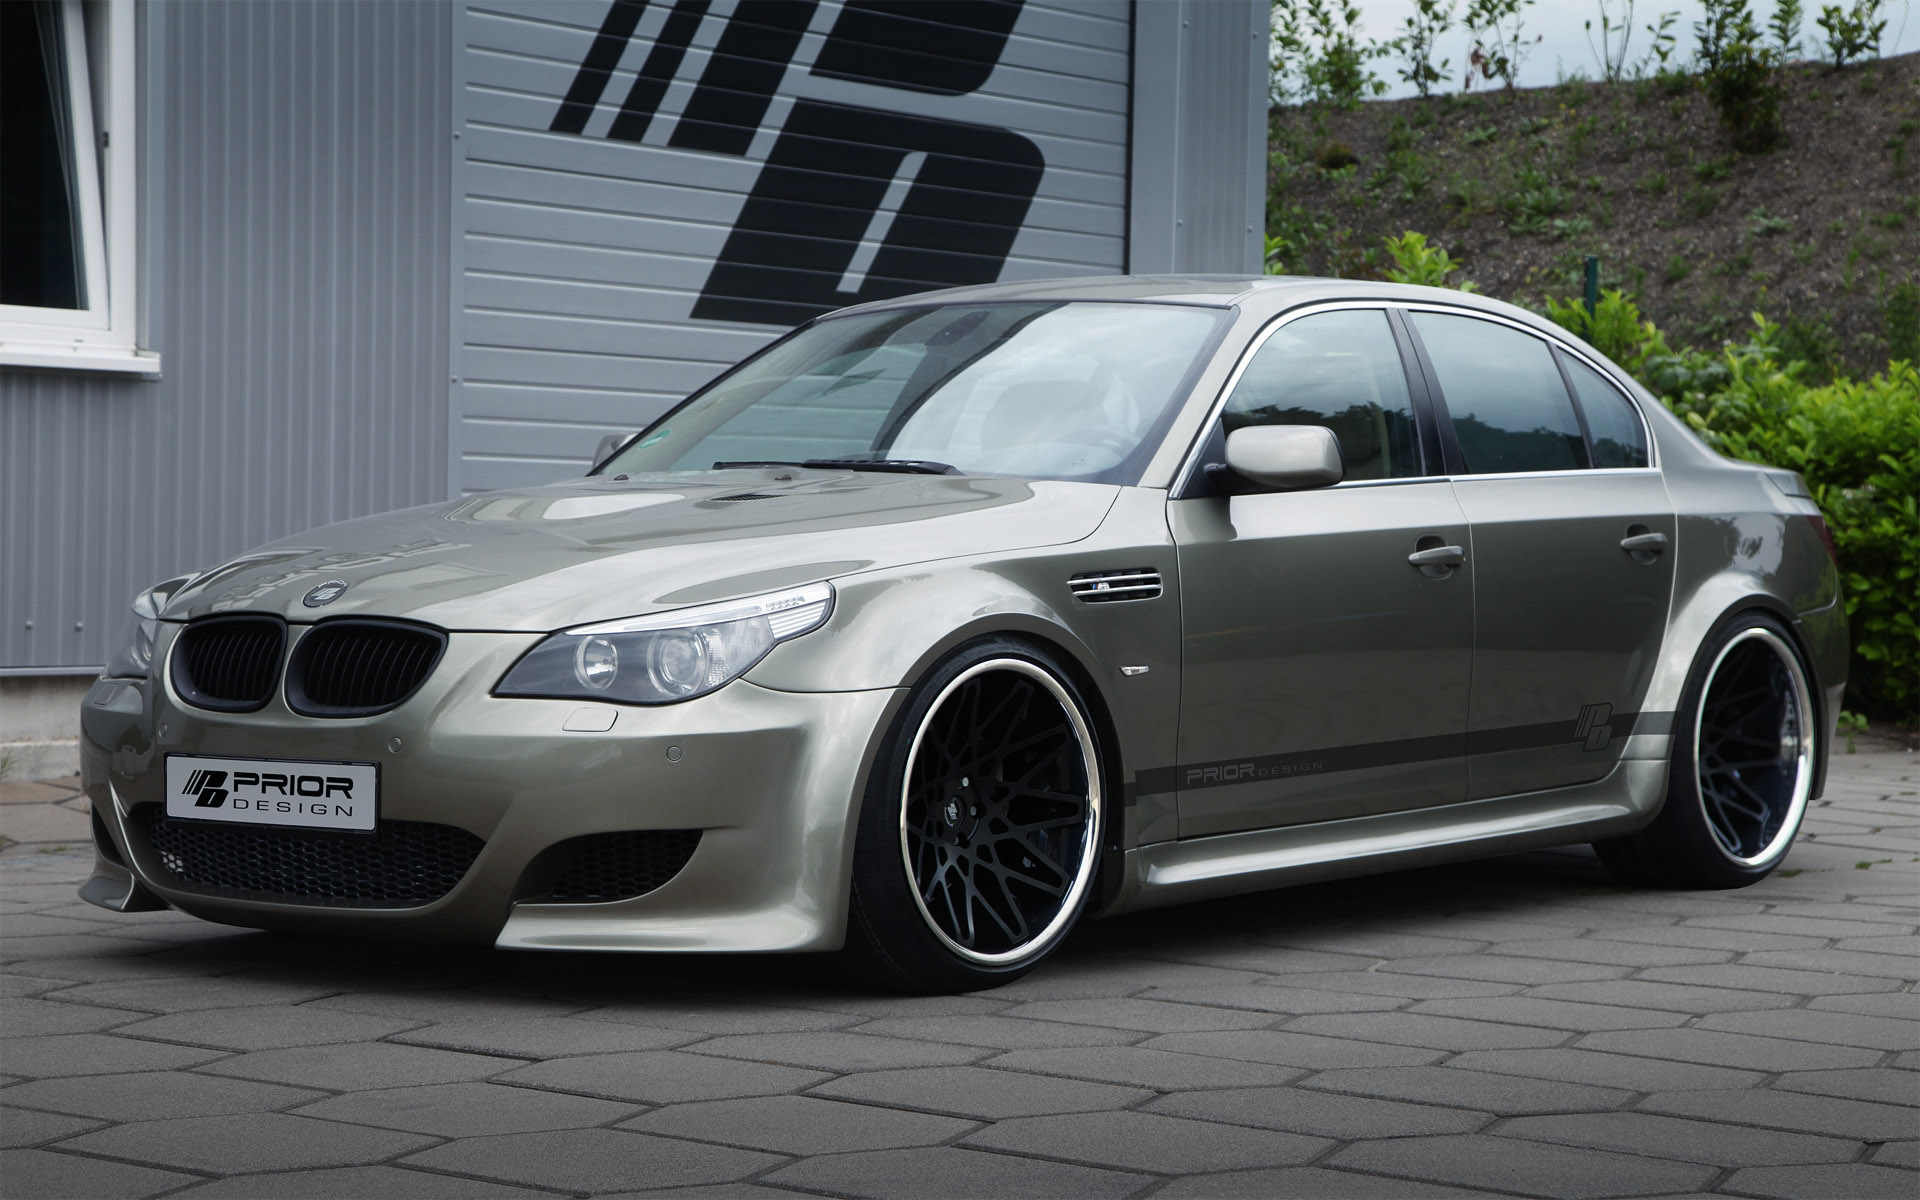 bmw 5 series e60 by prior design bmw photo 31335100 fanpop. Black Bedroom Furniture Sets. Home Design Ideas